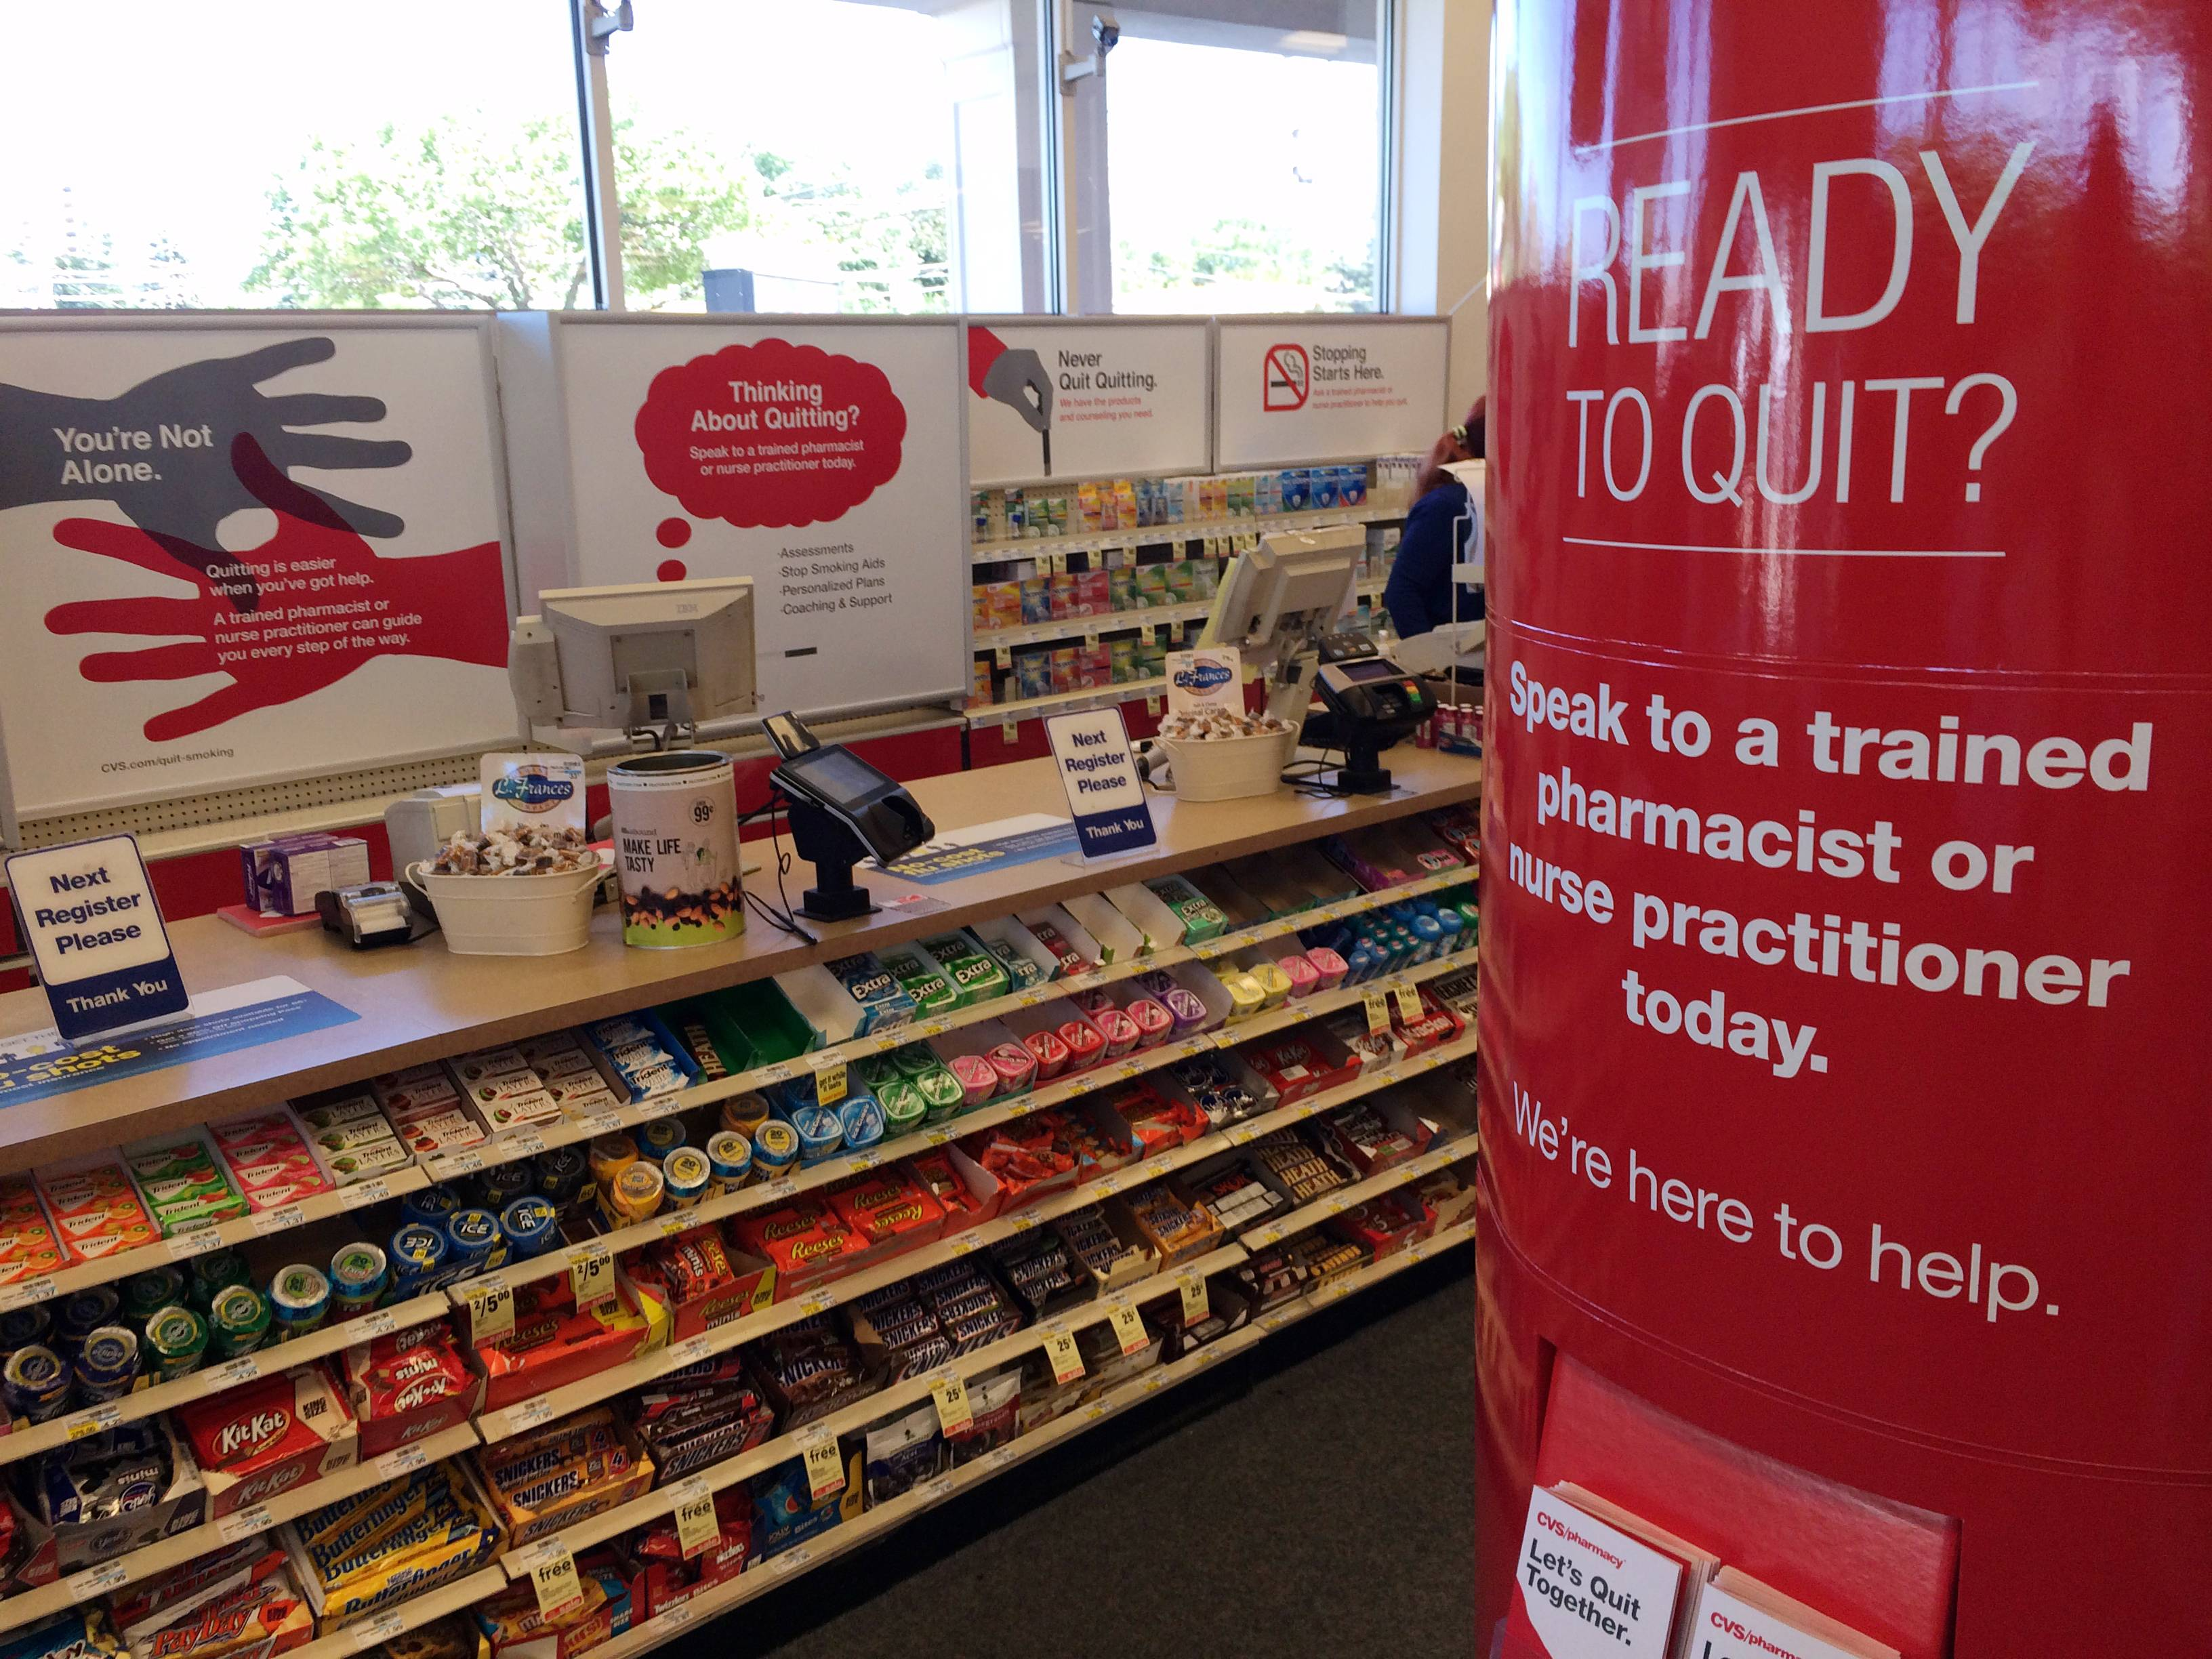 Signs encouraging people to quit smoking replace cigarette displays at a CVS pharmacy in Mount Prospect.